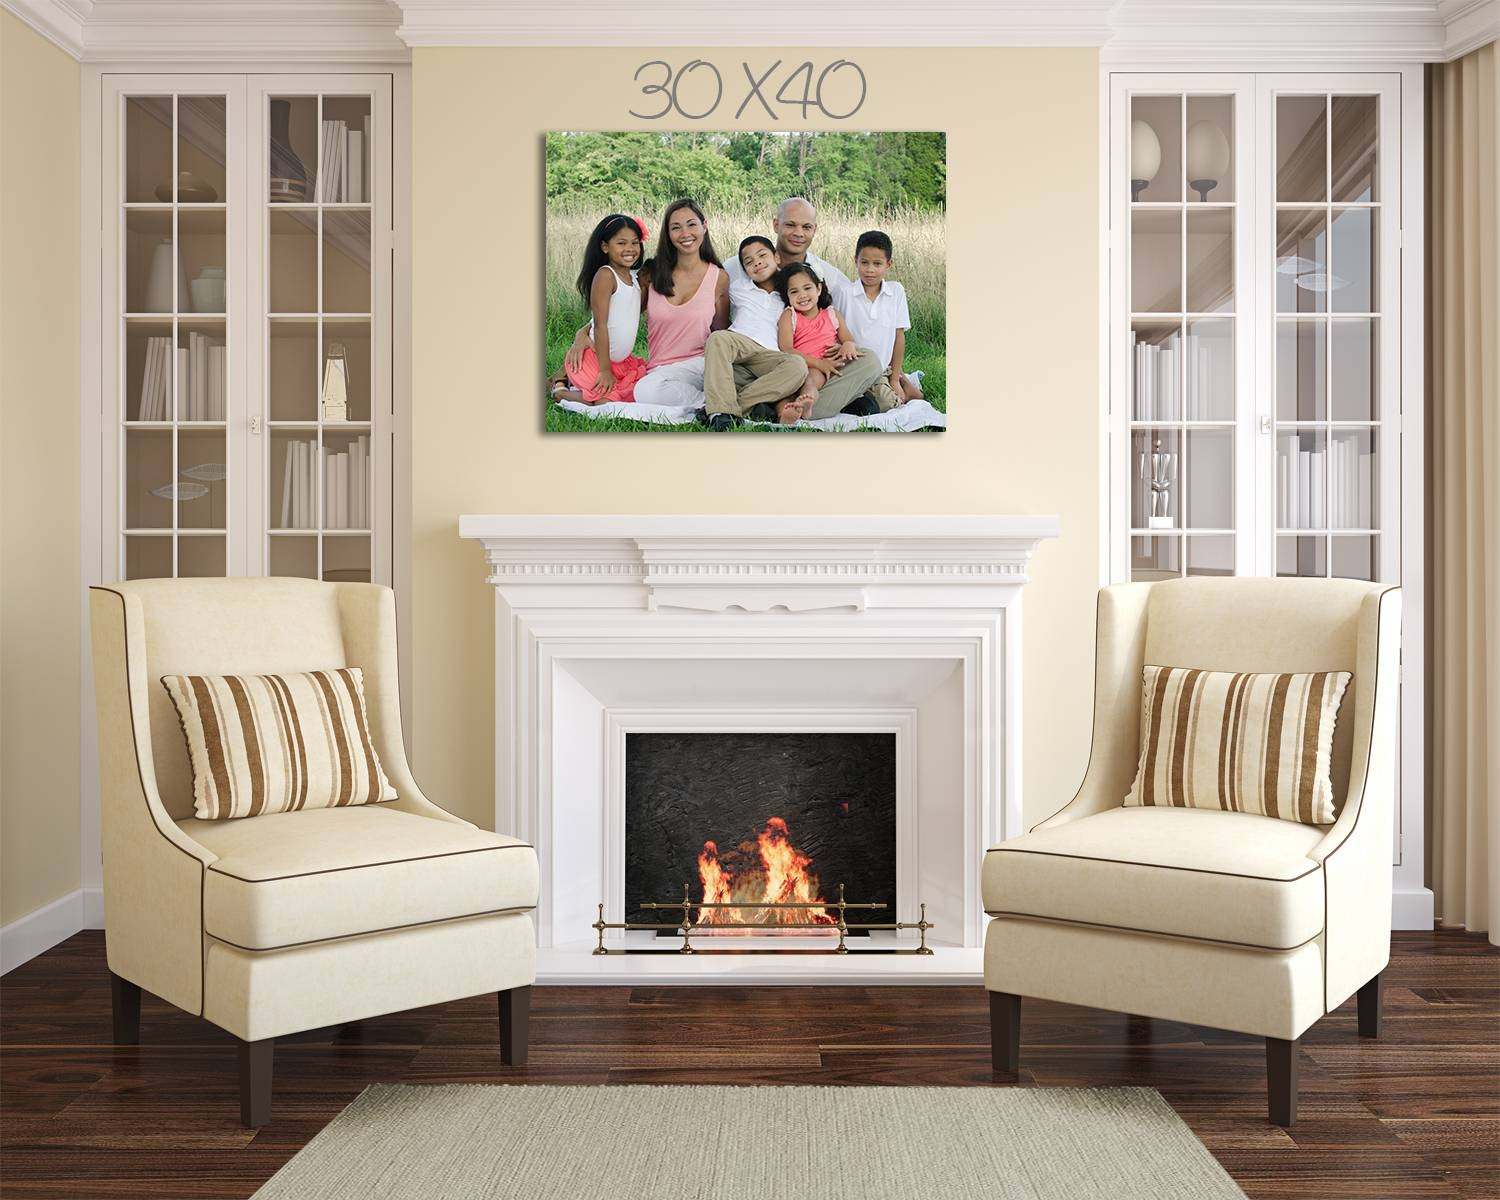 Fireplace Wall Art Luxury Home Design Fancy At Fireplace Wall Art Pertaining To Most Current Fireplace Wall Art (View 8 of 20)